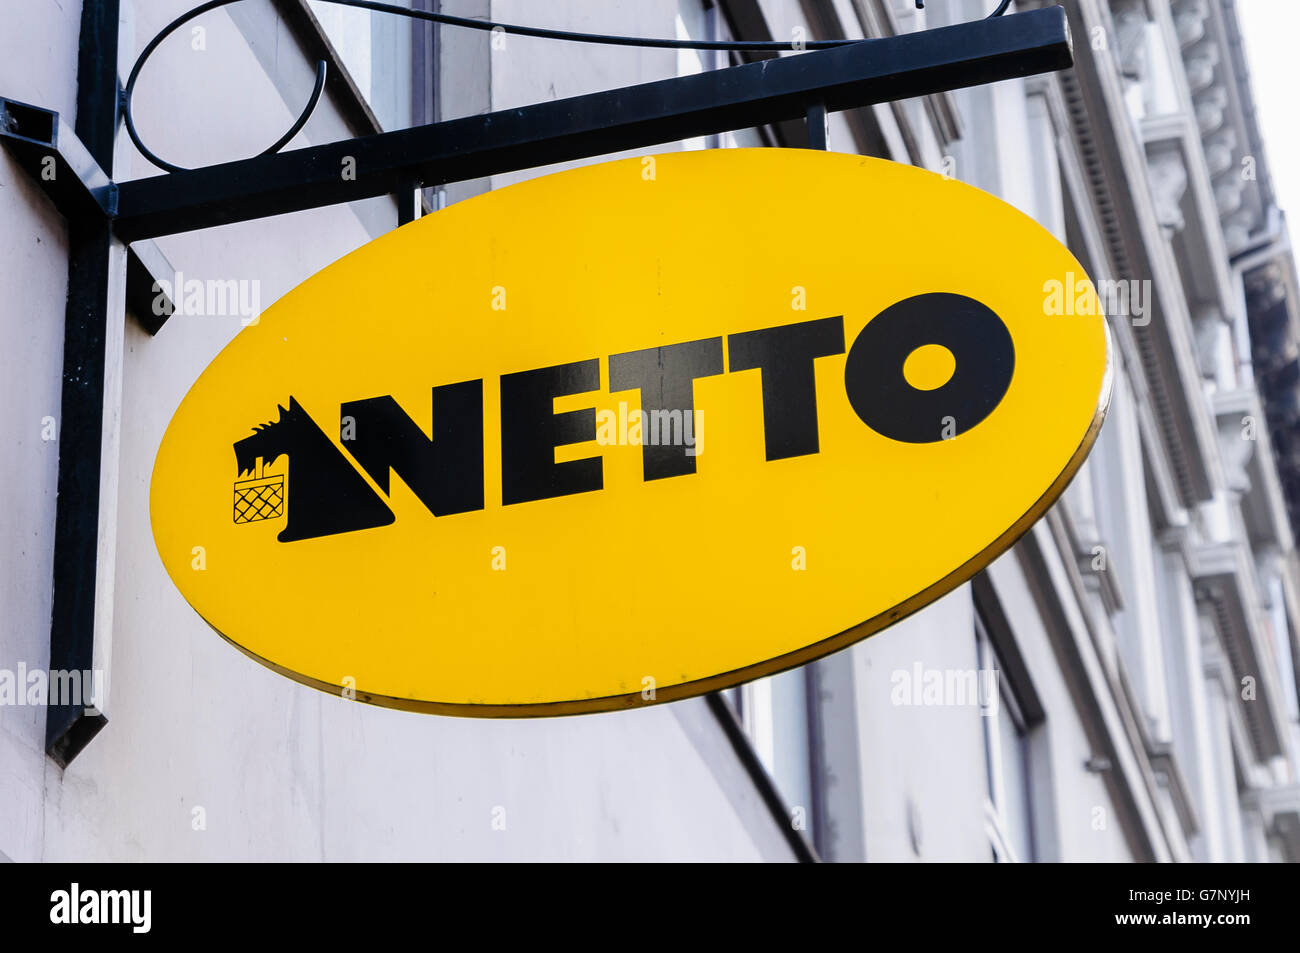 Sign for Netto, a Denmark based supermarket chain, with their Scottish Terrier logo - Stock Image